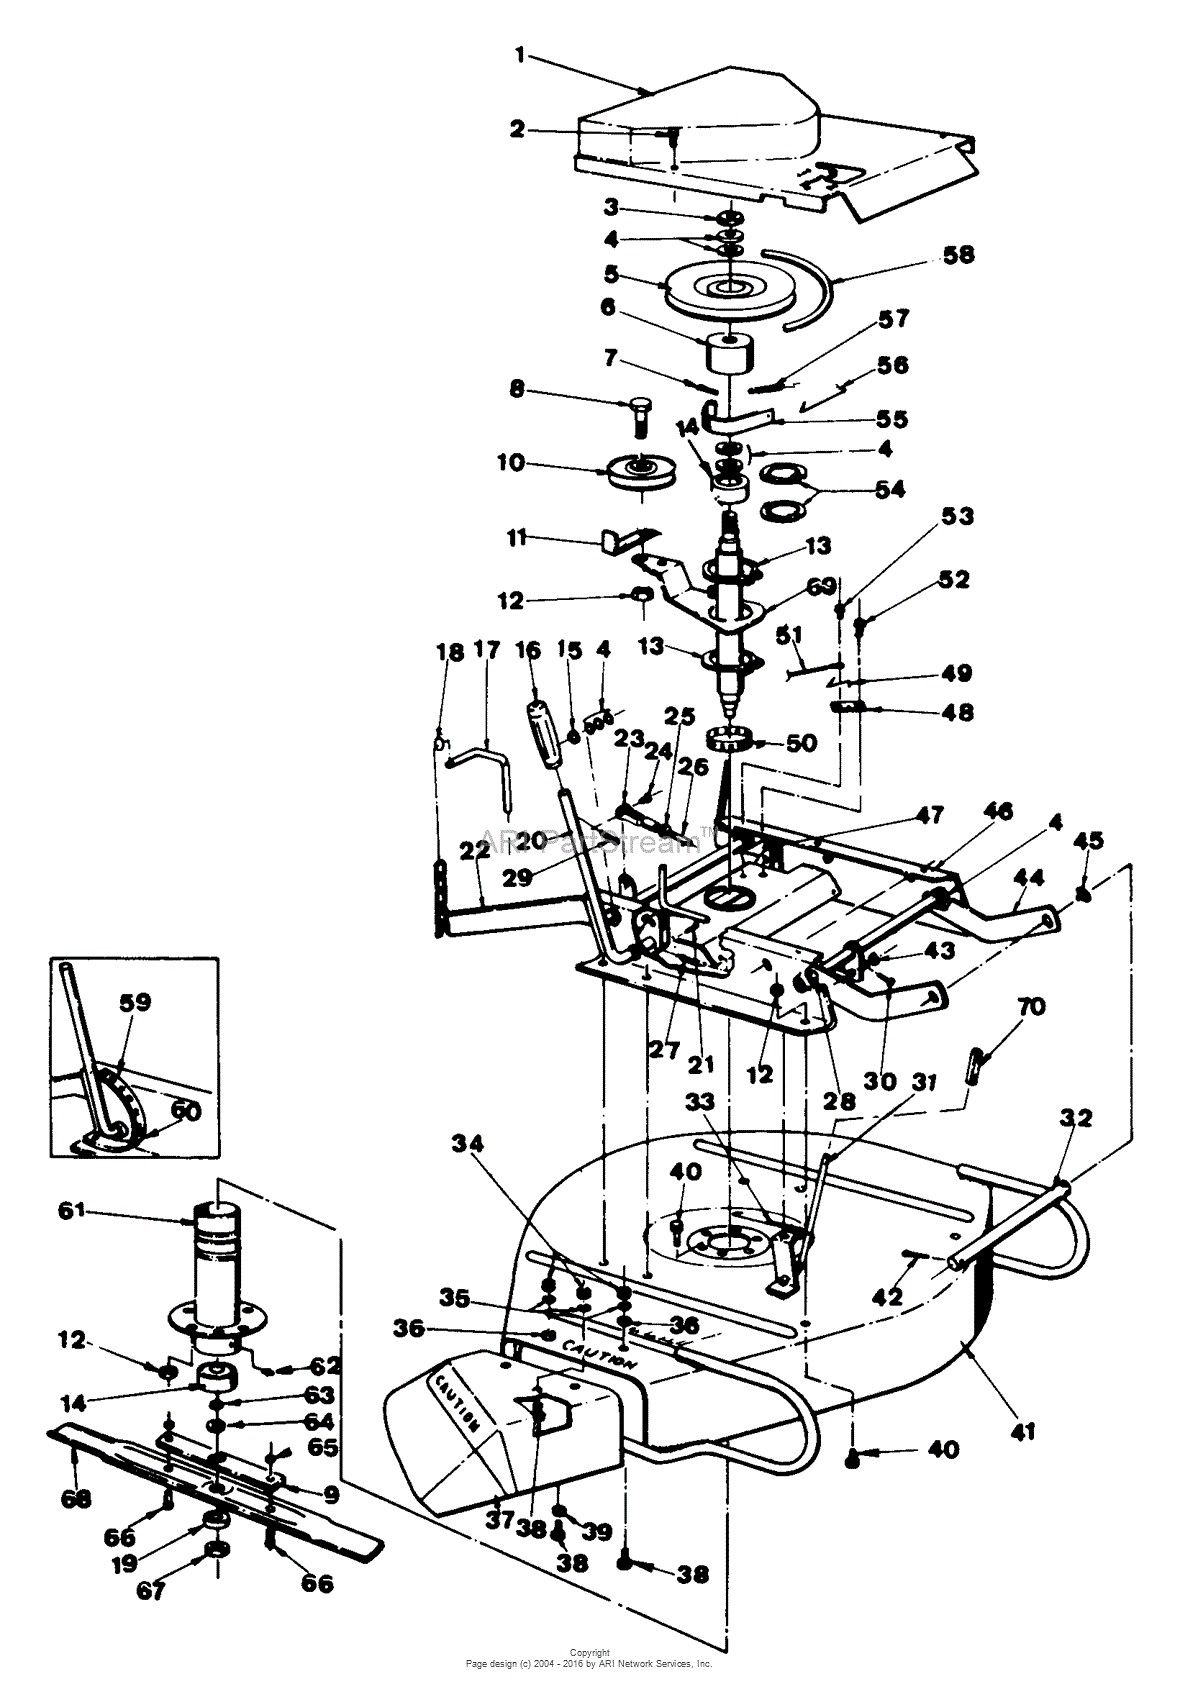 Snapper Rear Engine Rider Wiring Diagram In 2020 Rider Engineering Diagram